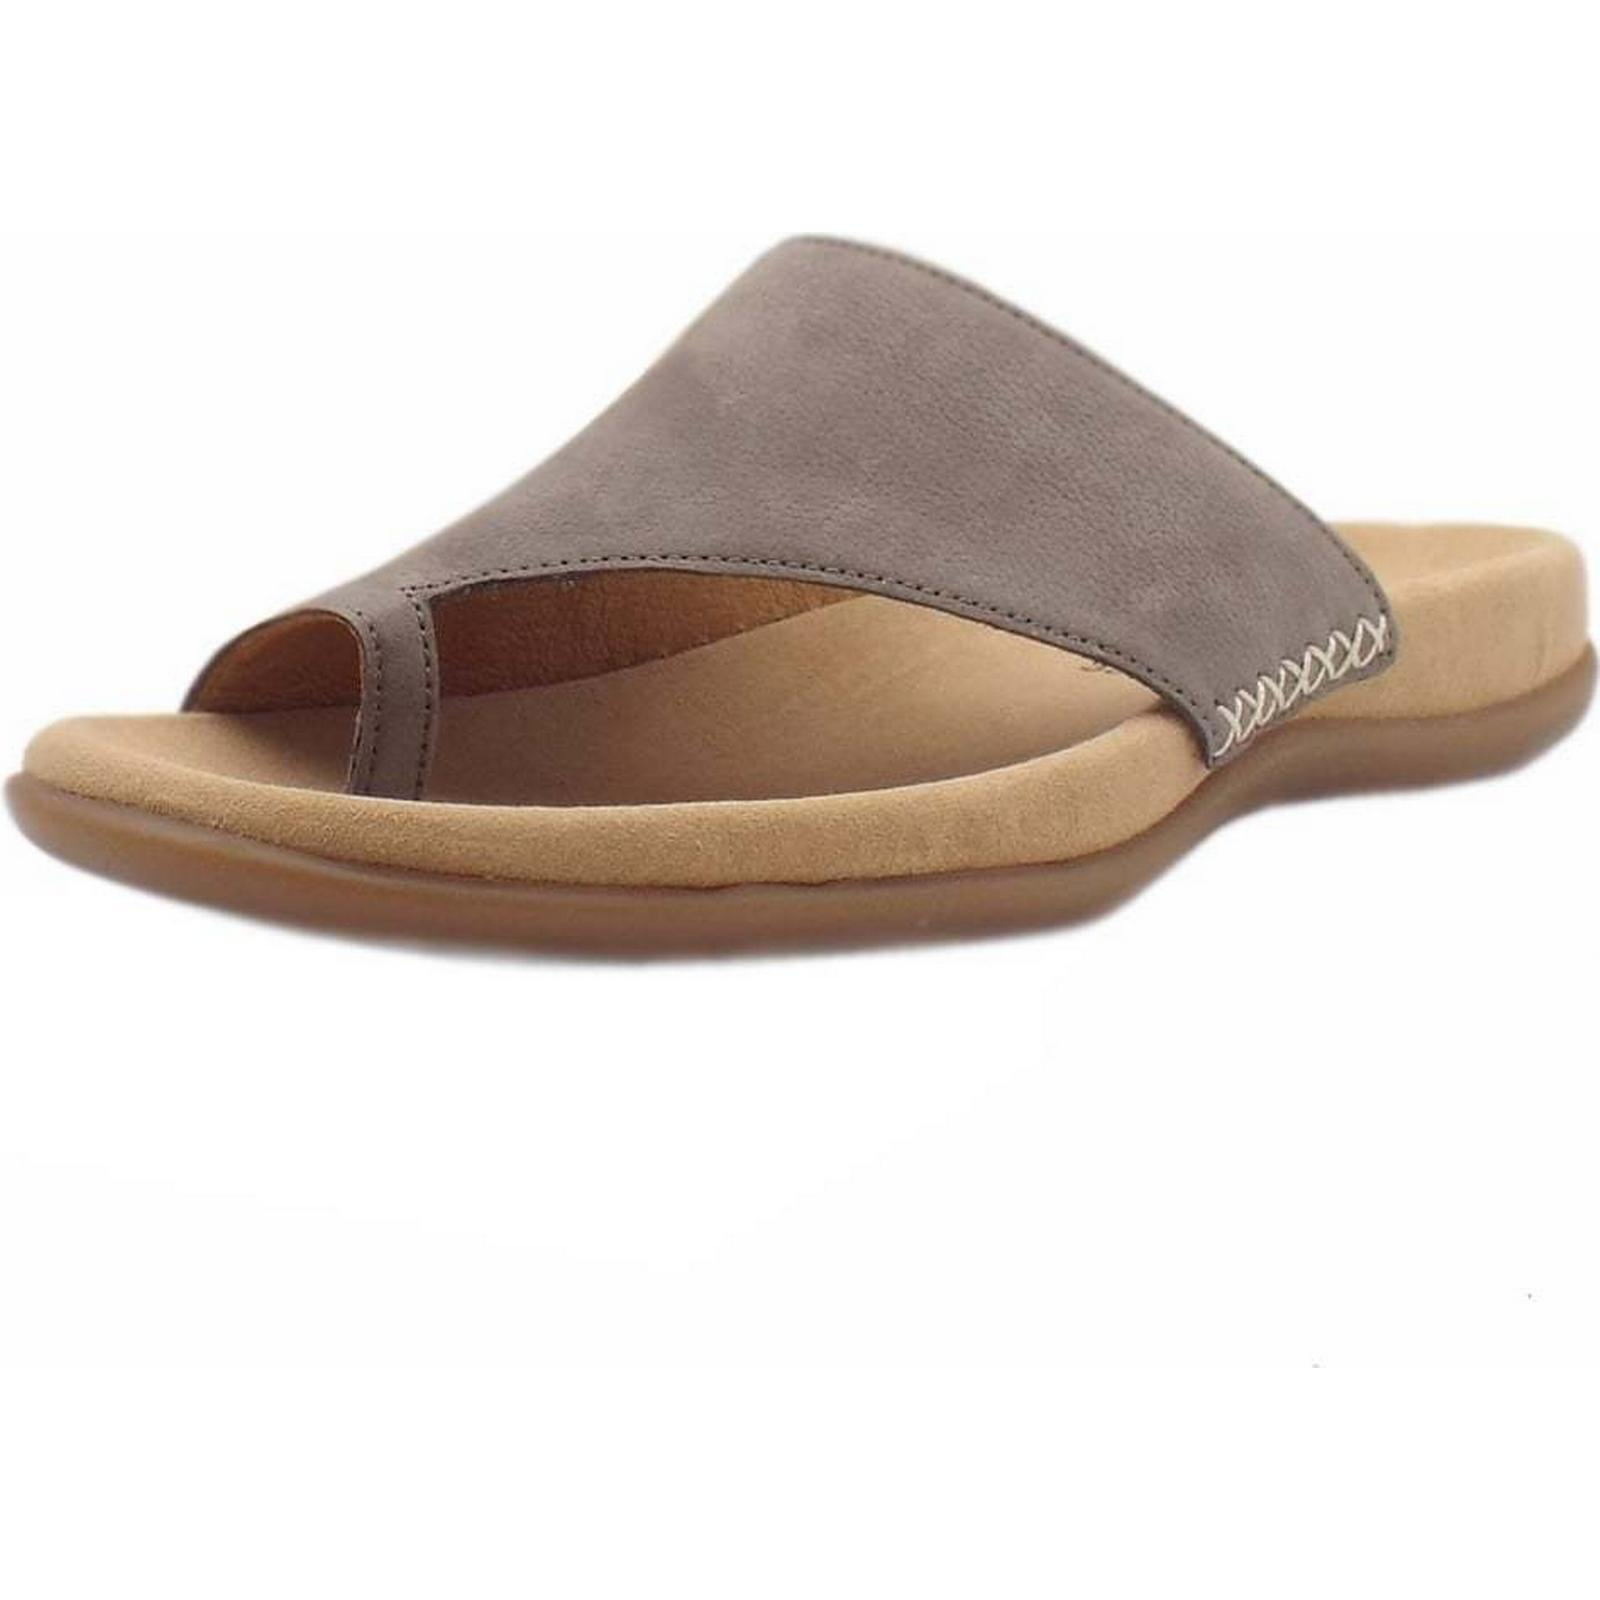 Gabor LANZAROTE CLASSIC CLASSIC CLASSIC GABOR LADIES SANDALS Colour: FUMO, Size: 40 bfd870